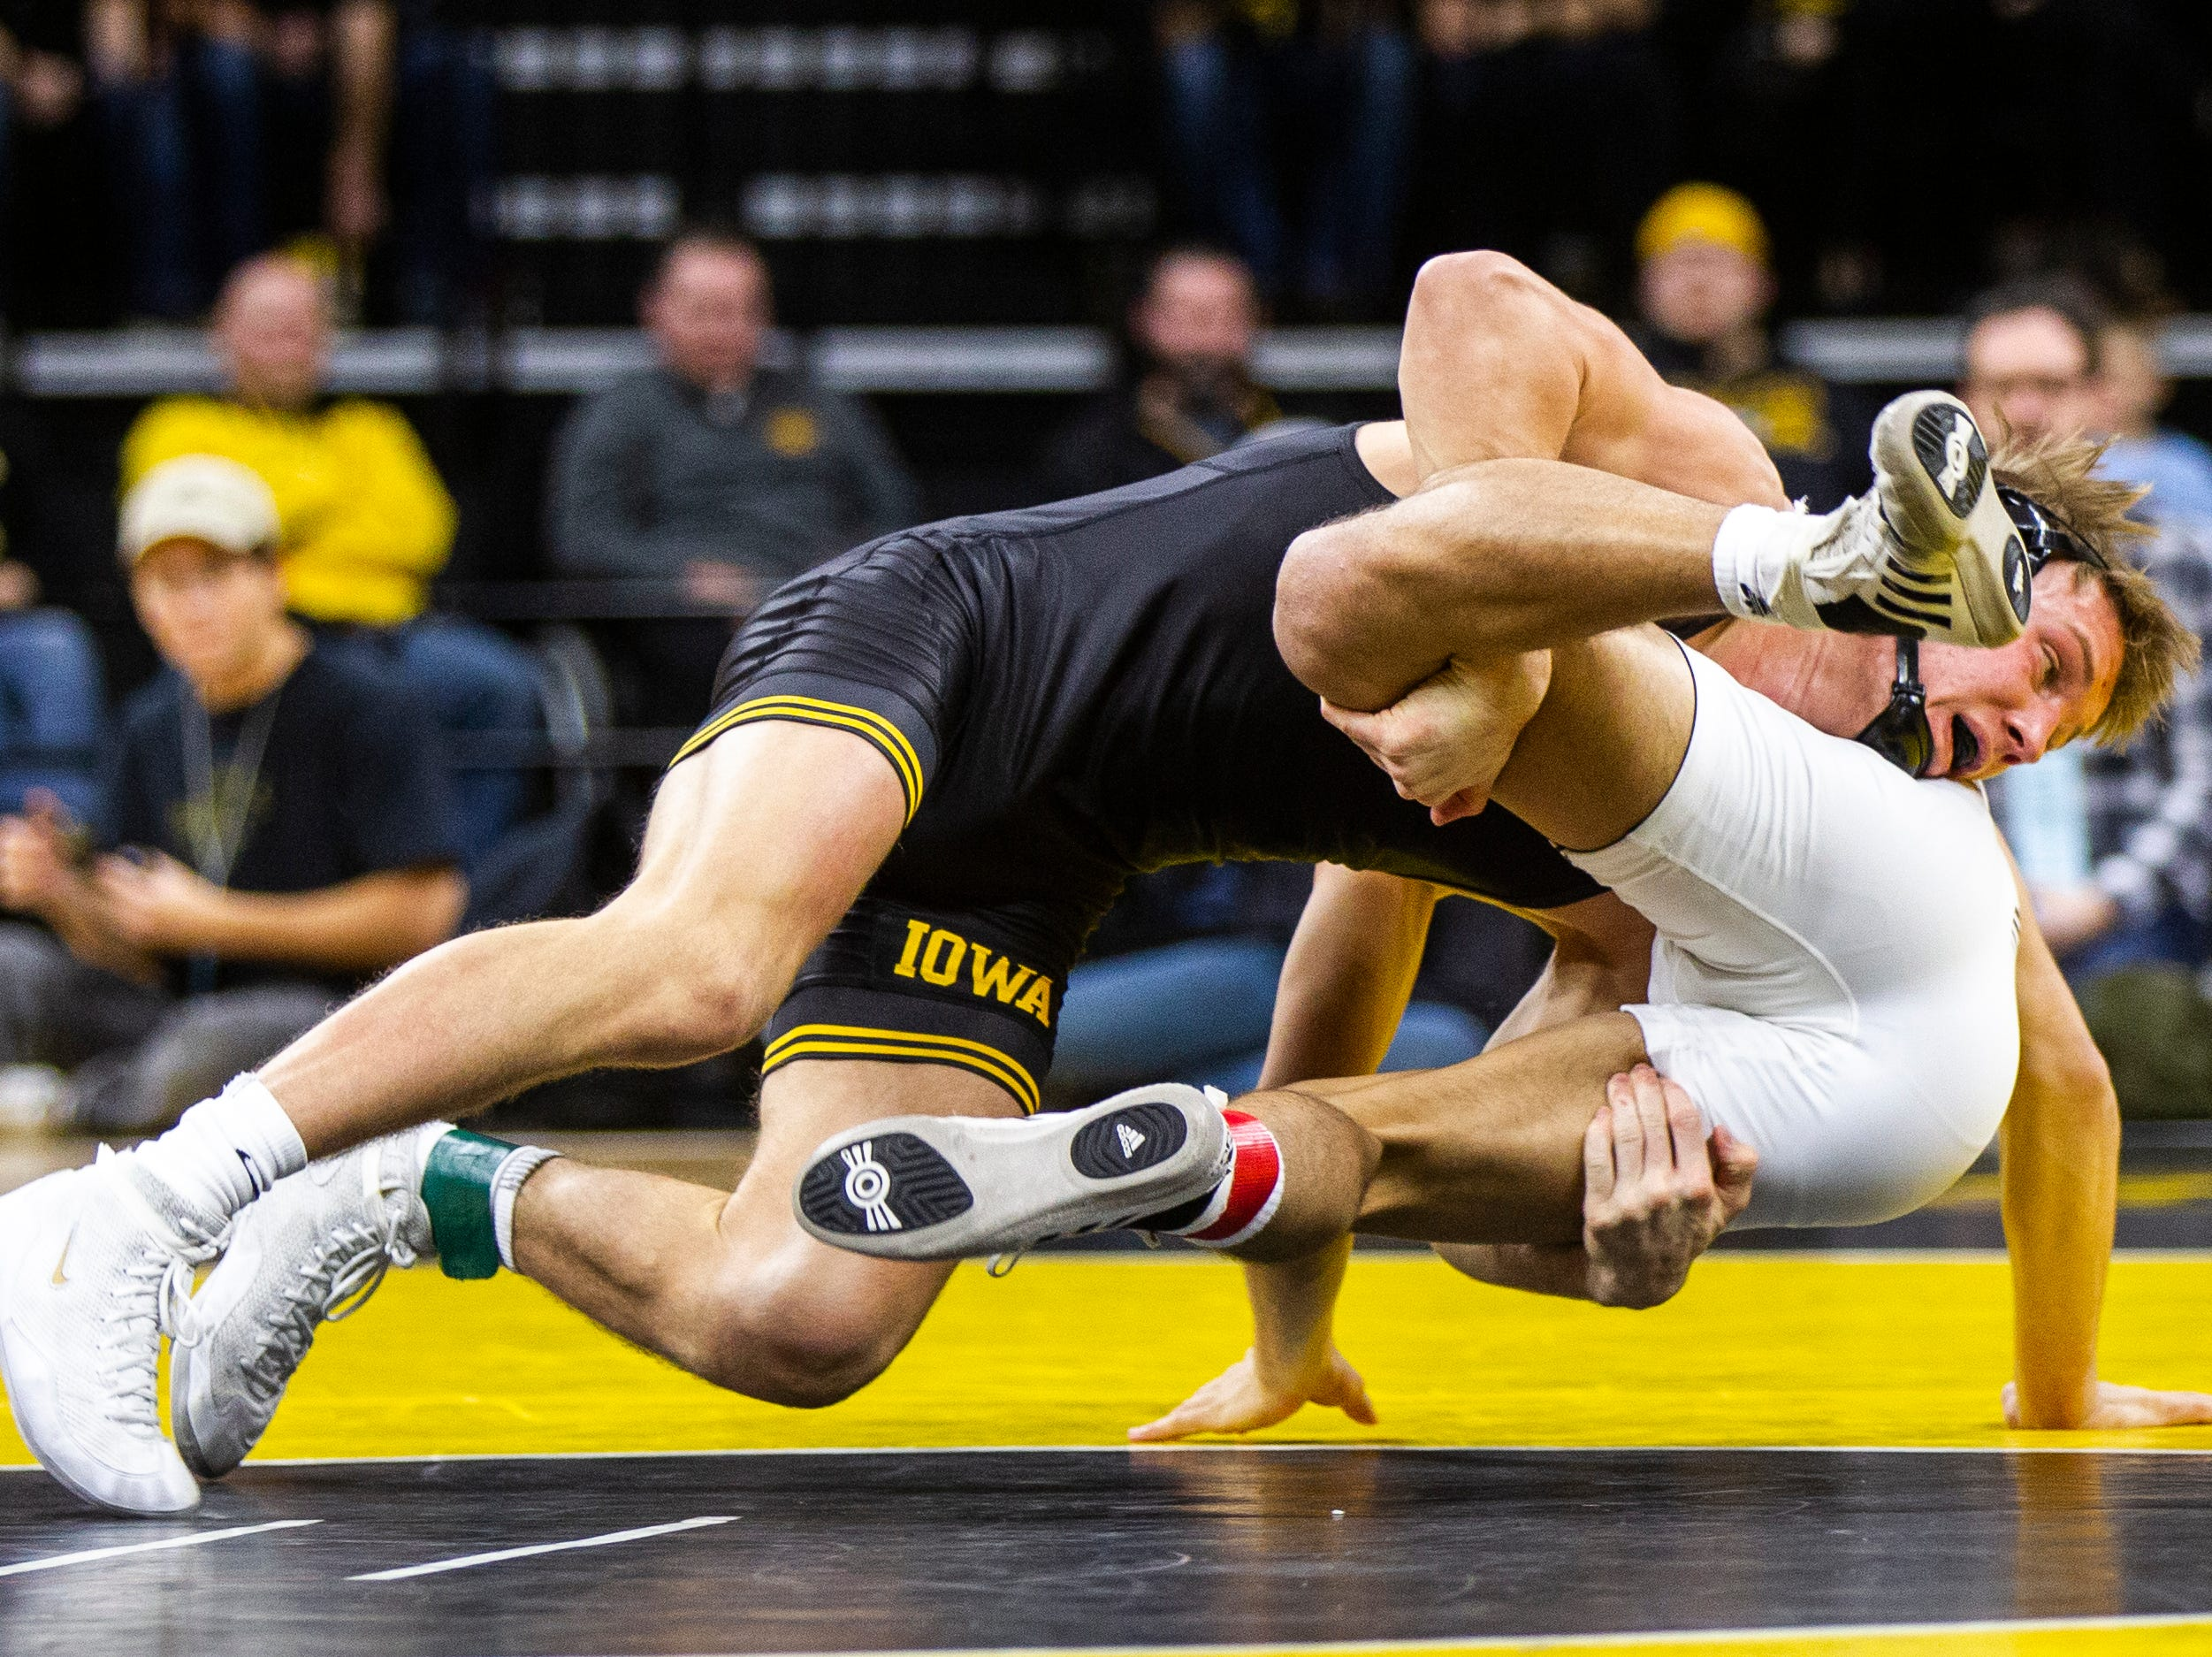 Iowa's Max Murin, left, gets a takedown on Lehigh's Ryan Pomrinca at 141 during a NCAA wrestling dual on Saturday, Dec. 8, 2018, at Carver-Hawkeye Arena in Iowa City.